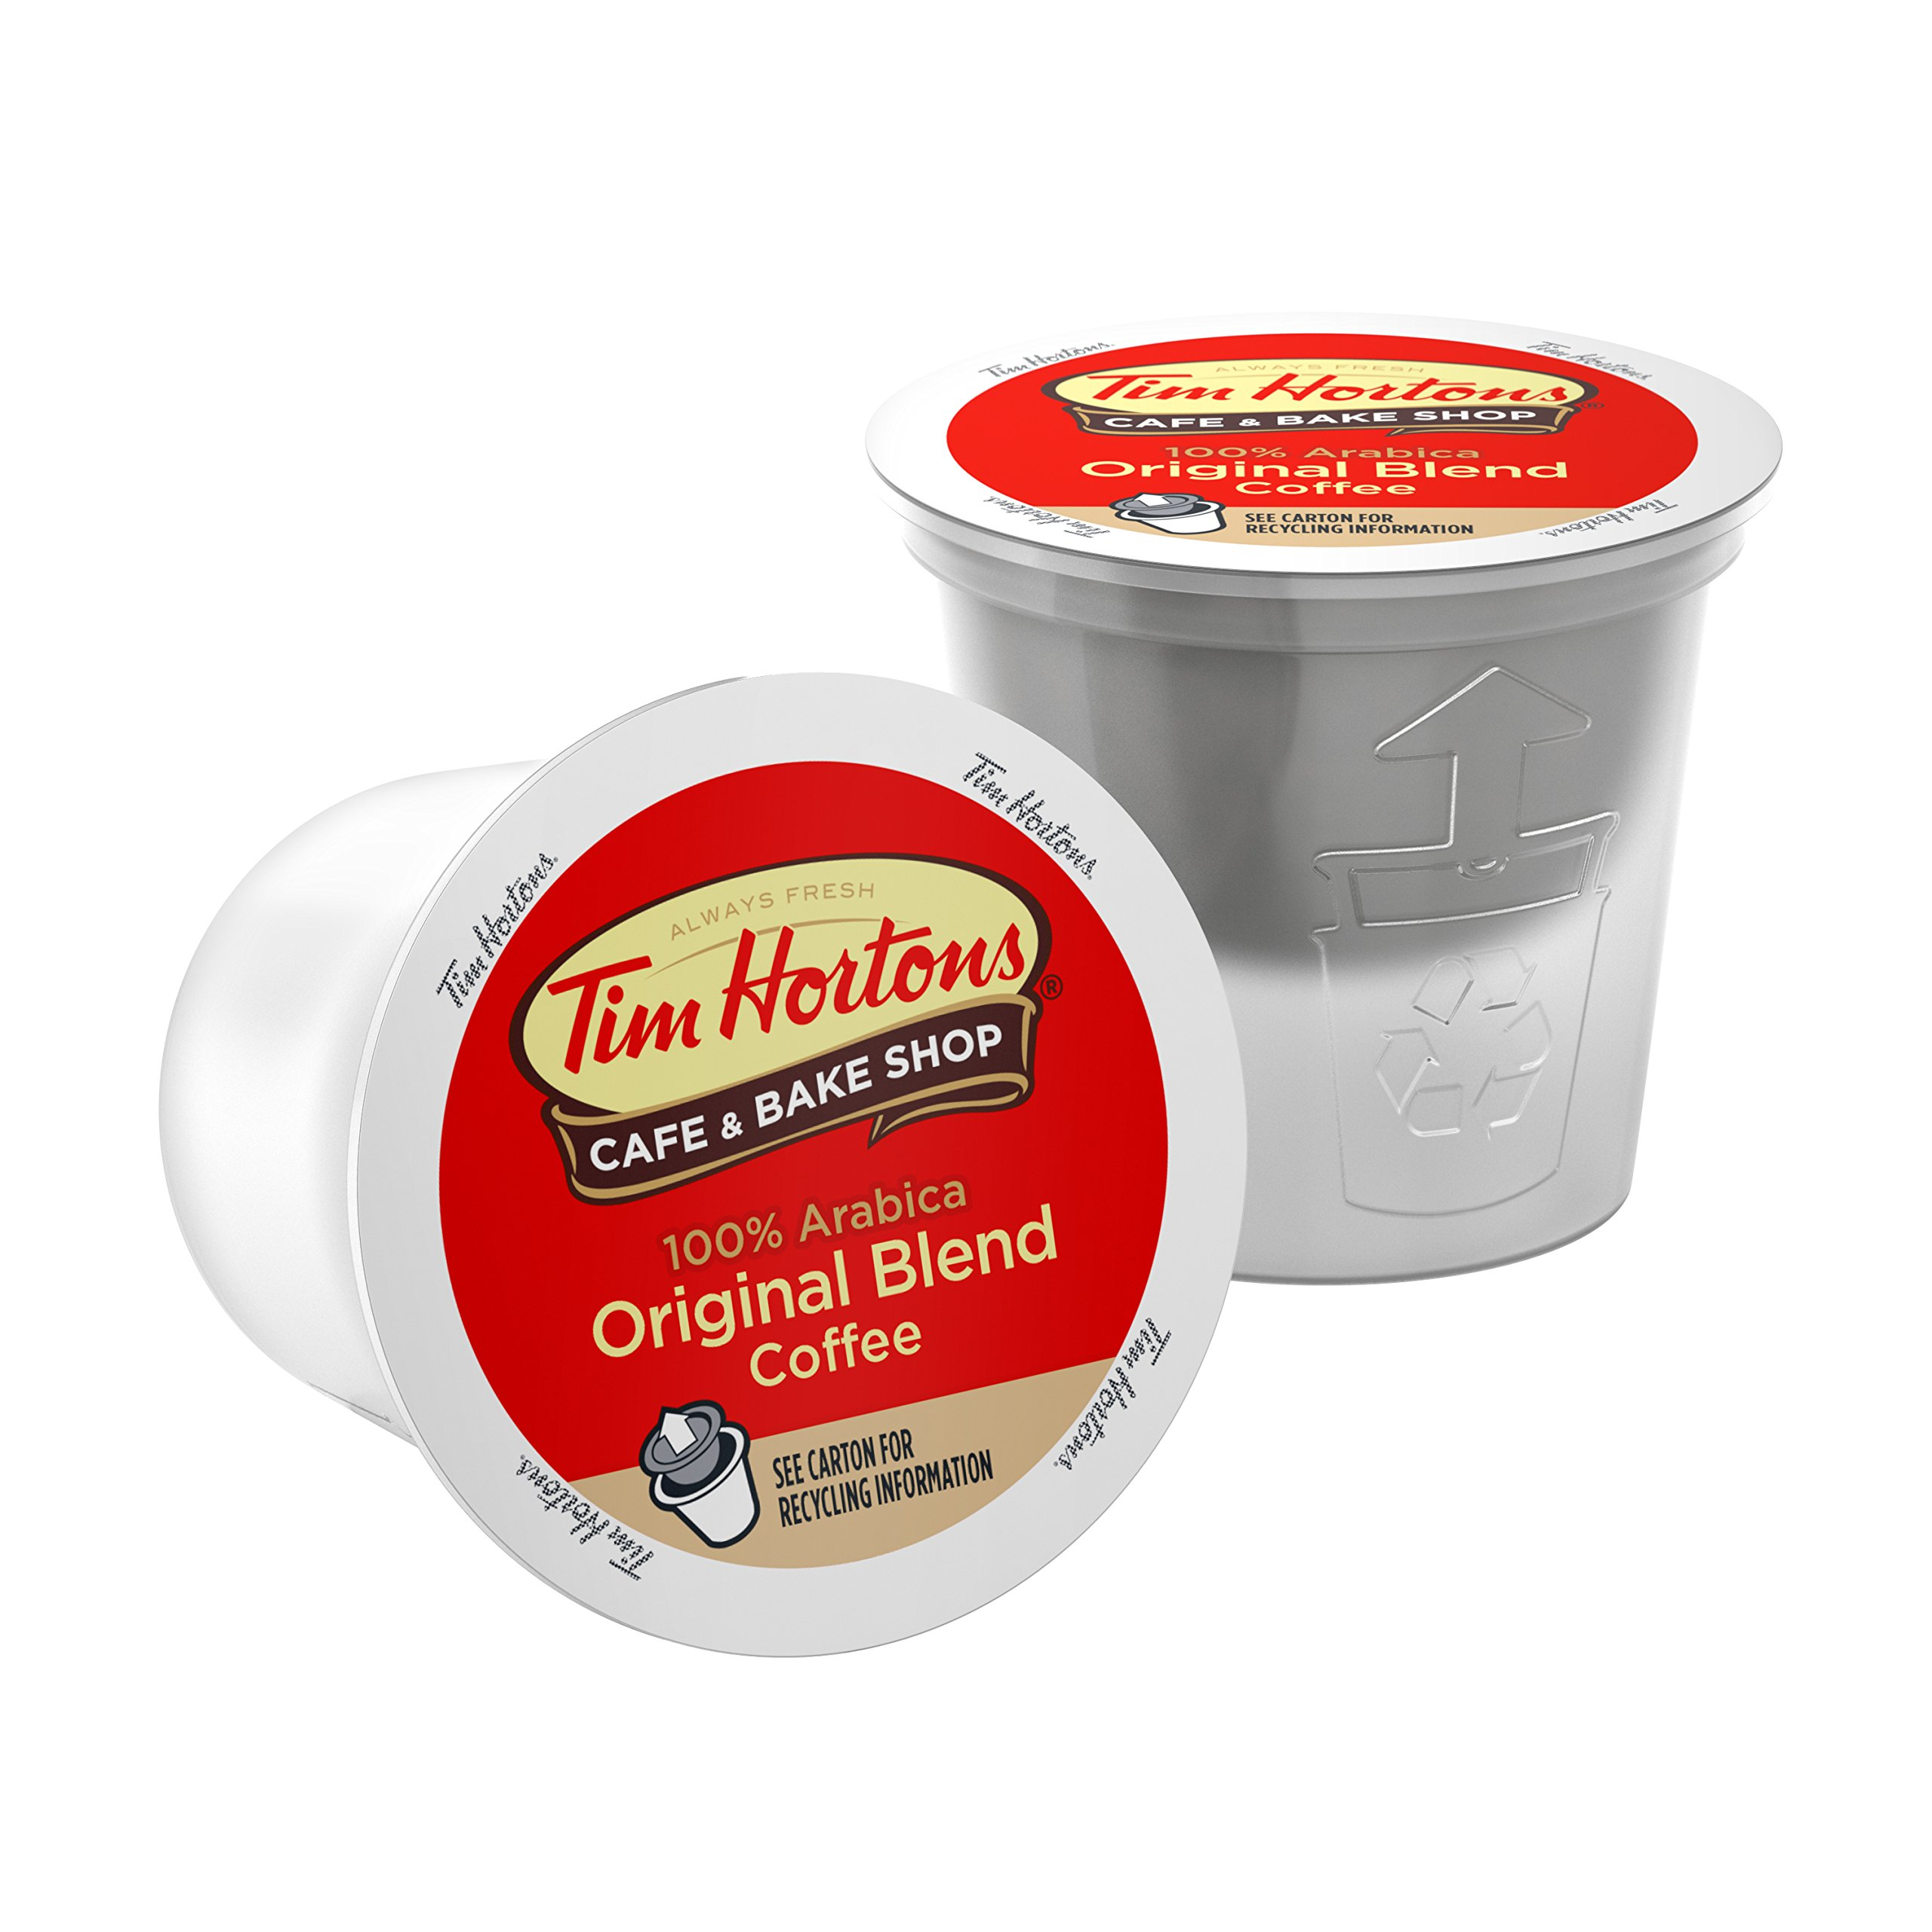 Tim Horton's Single Serve Coffee Cups, Medium Roast, 80 Count by Tim Hortons (Image #5)